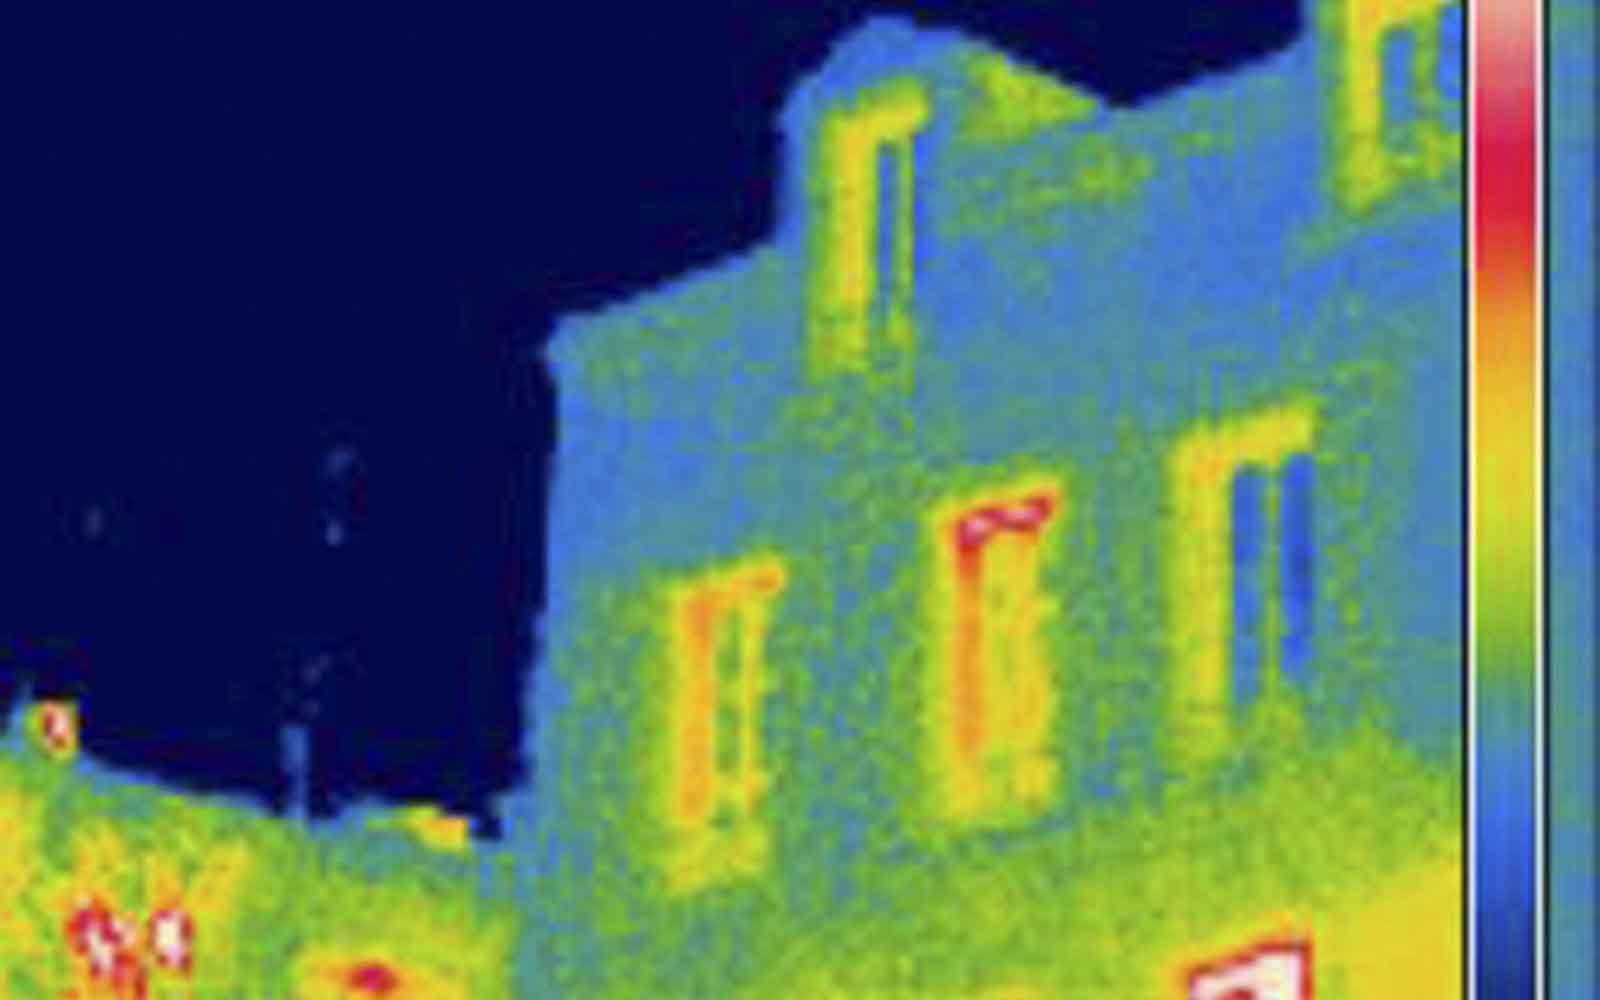 Heat sensor image of a house